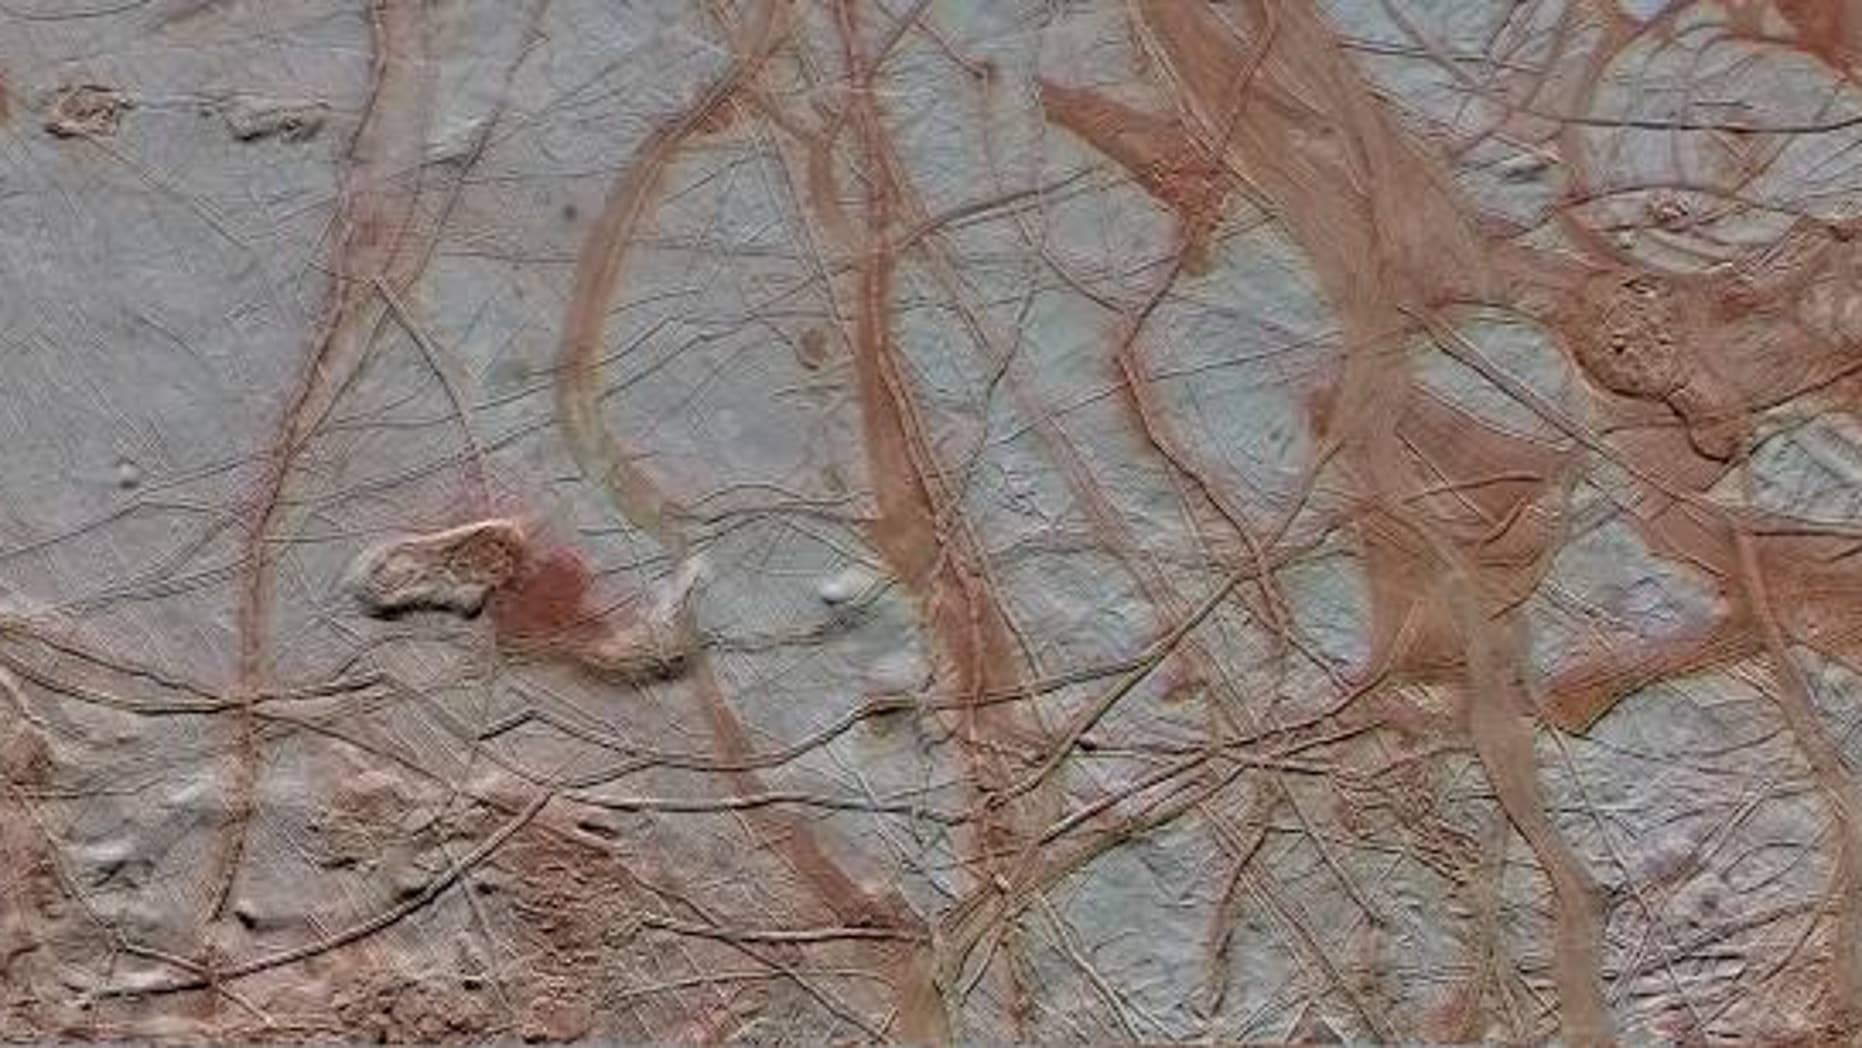 This enhanced-color view shows a swath of Jupiter's moon Europa that's 217 miles wide by 466 miles long (350 by 750 kilometers). New research suggests that Europa's surface could be 95 percent porous, meaning a probe might sink if it landed there.